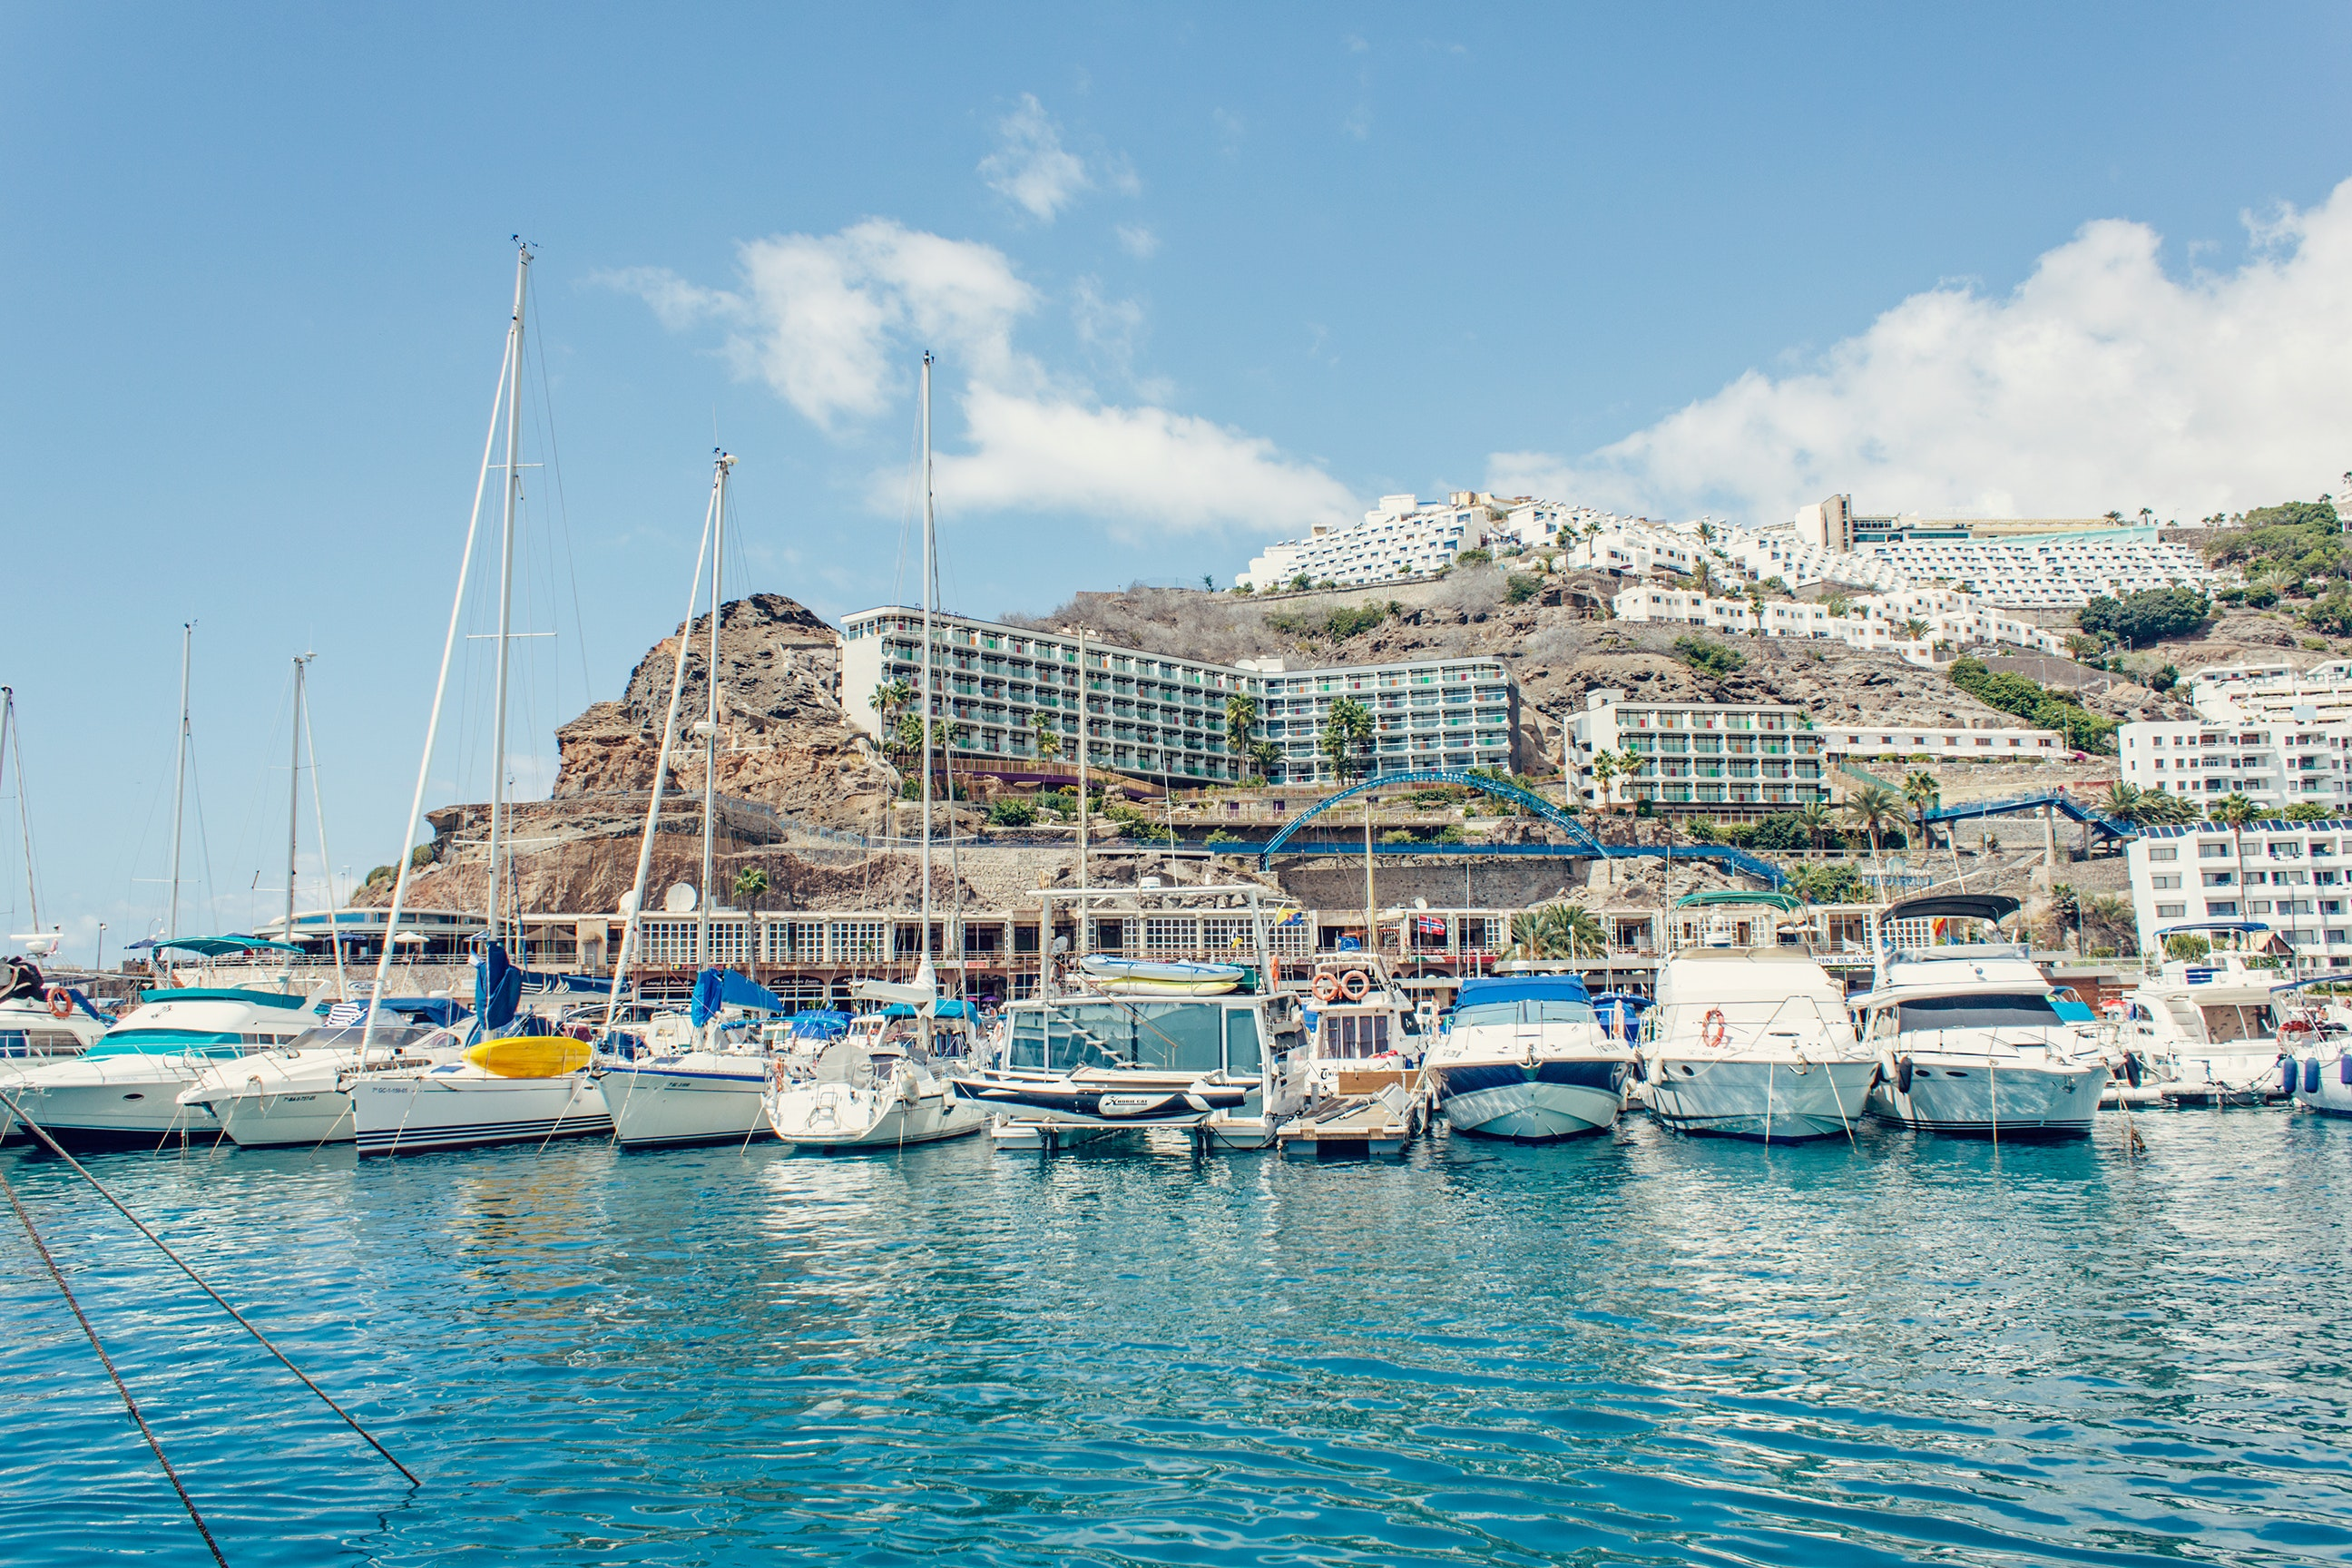 Sailboats Moored in Sea, Bay, Port, Waterfront, Watercrafts, HQ Photo